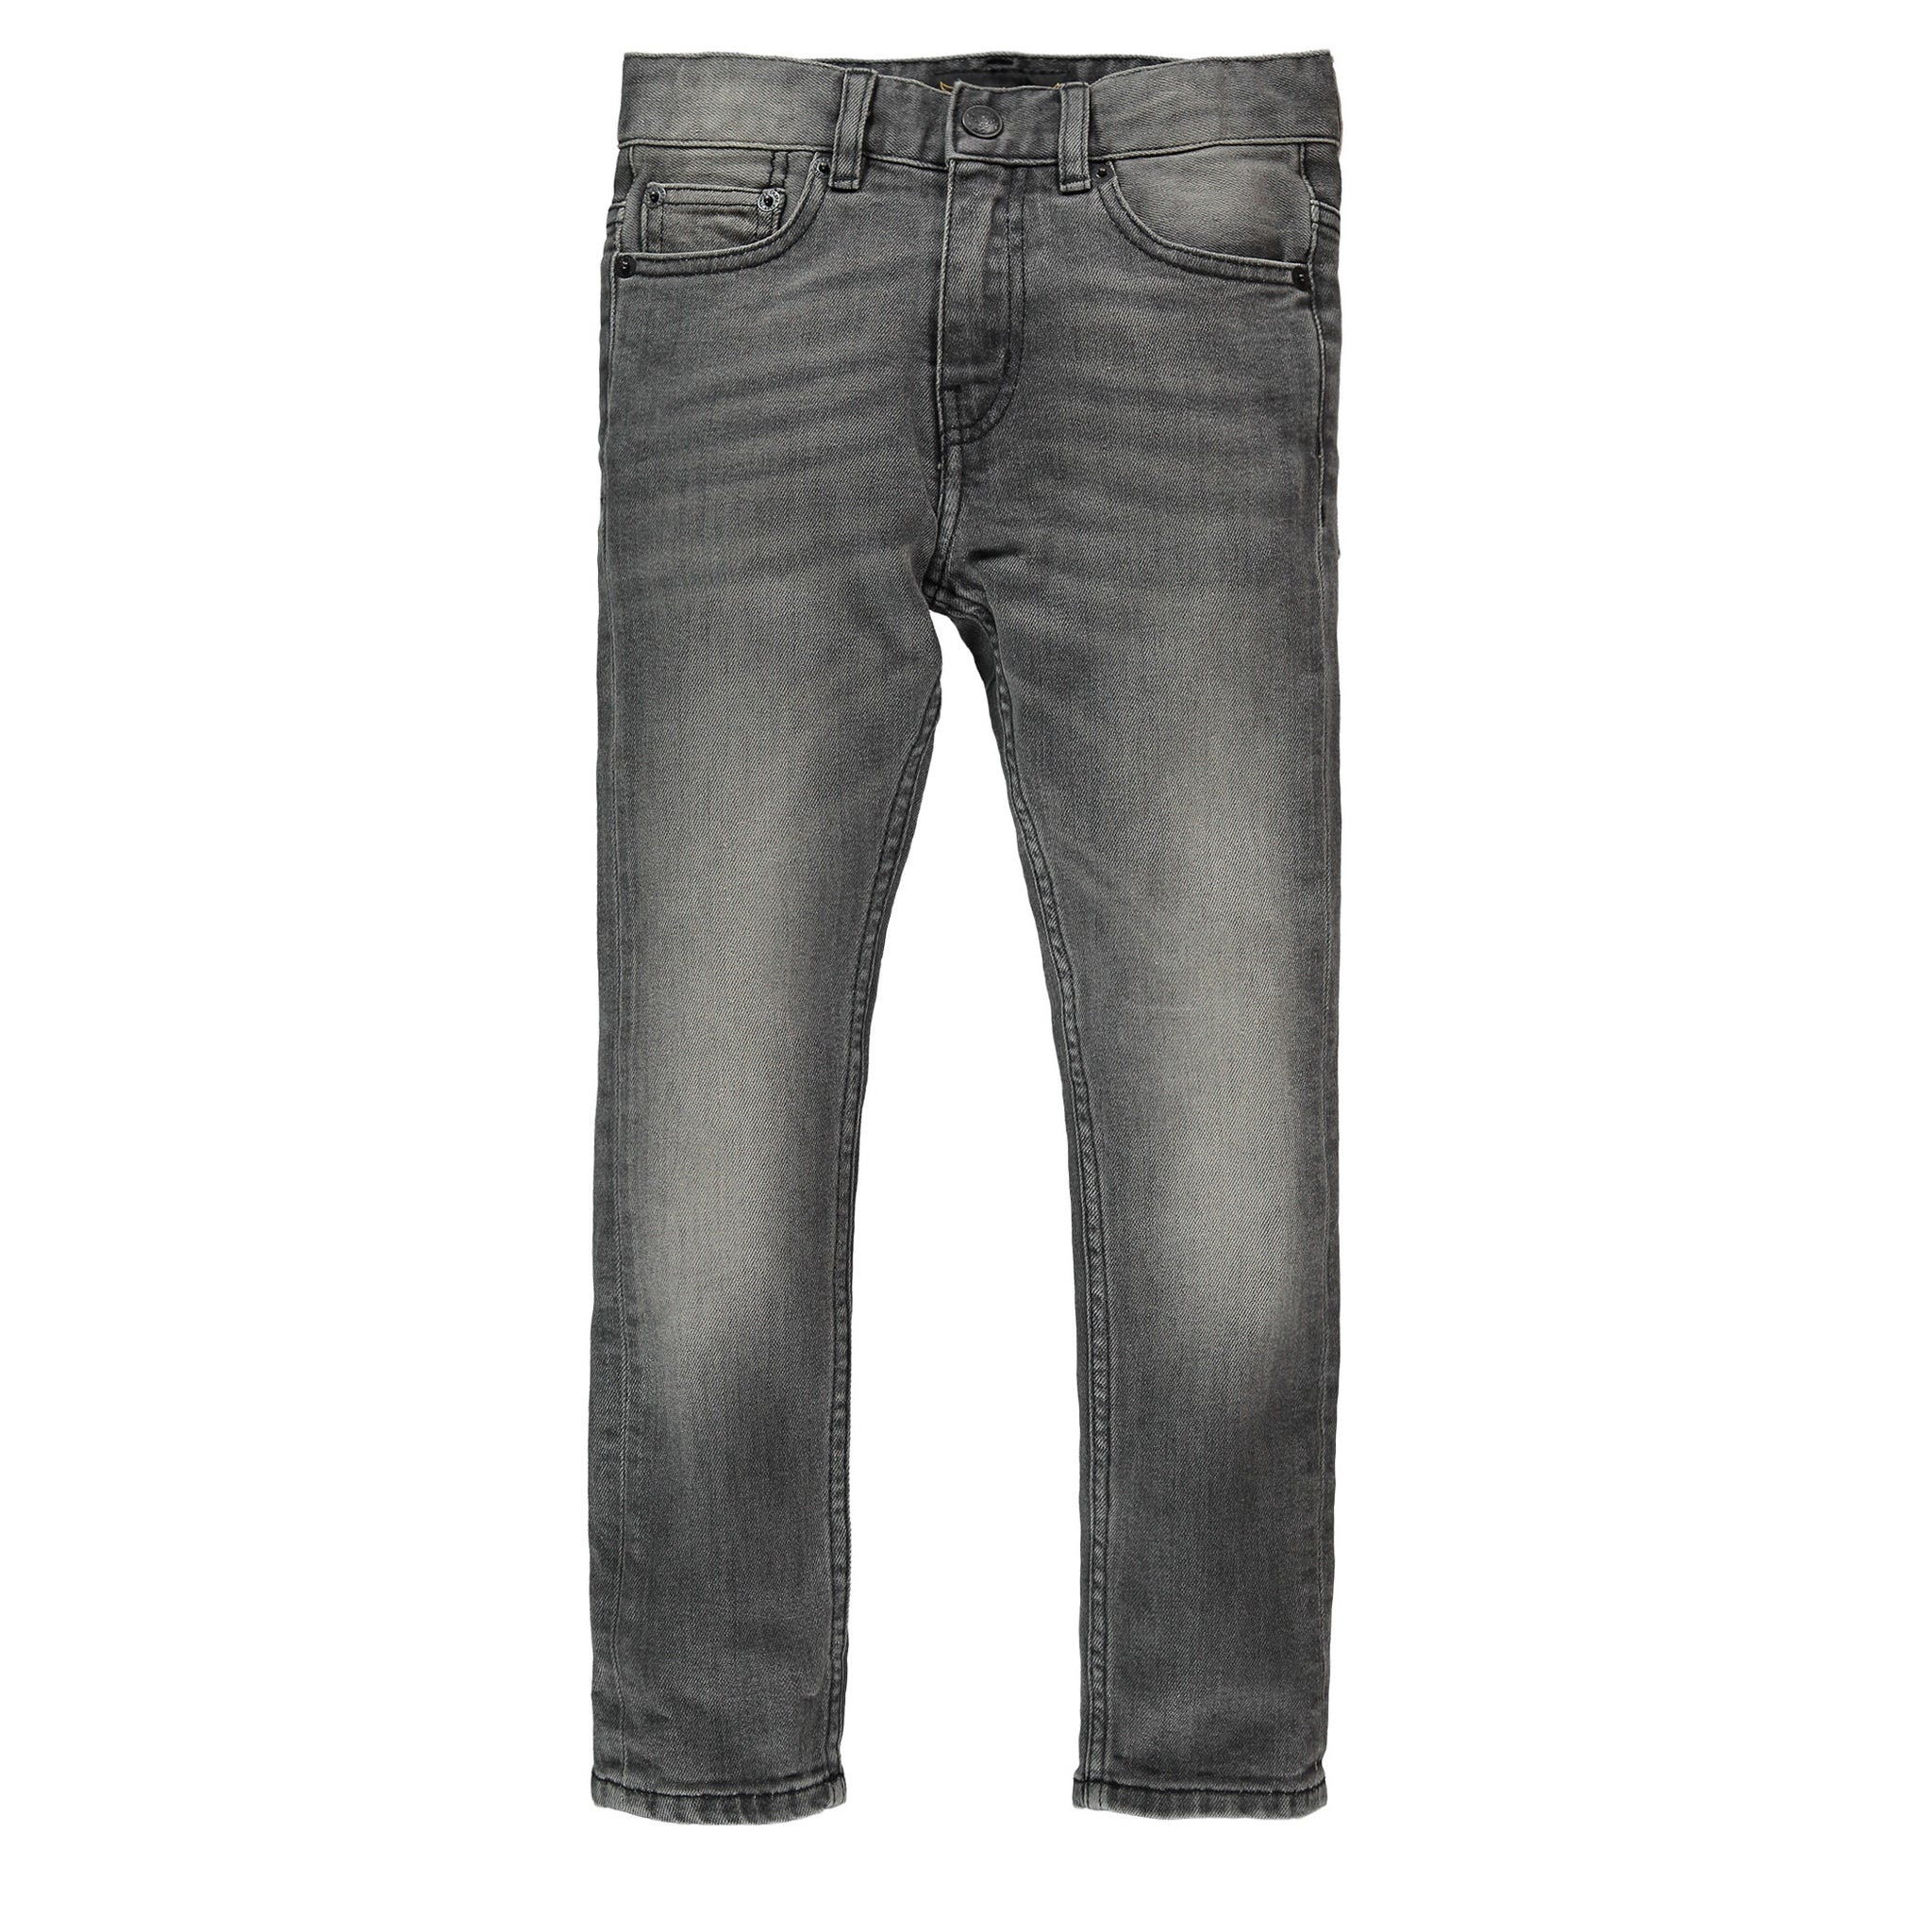 NEW NORTON Dirty Grey - Boys Woven 5 Pockets Straight Fit Jeans